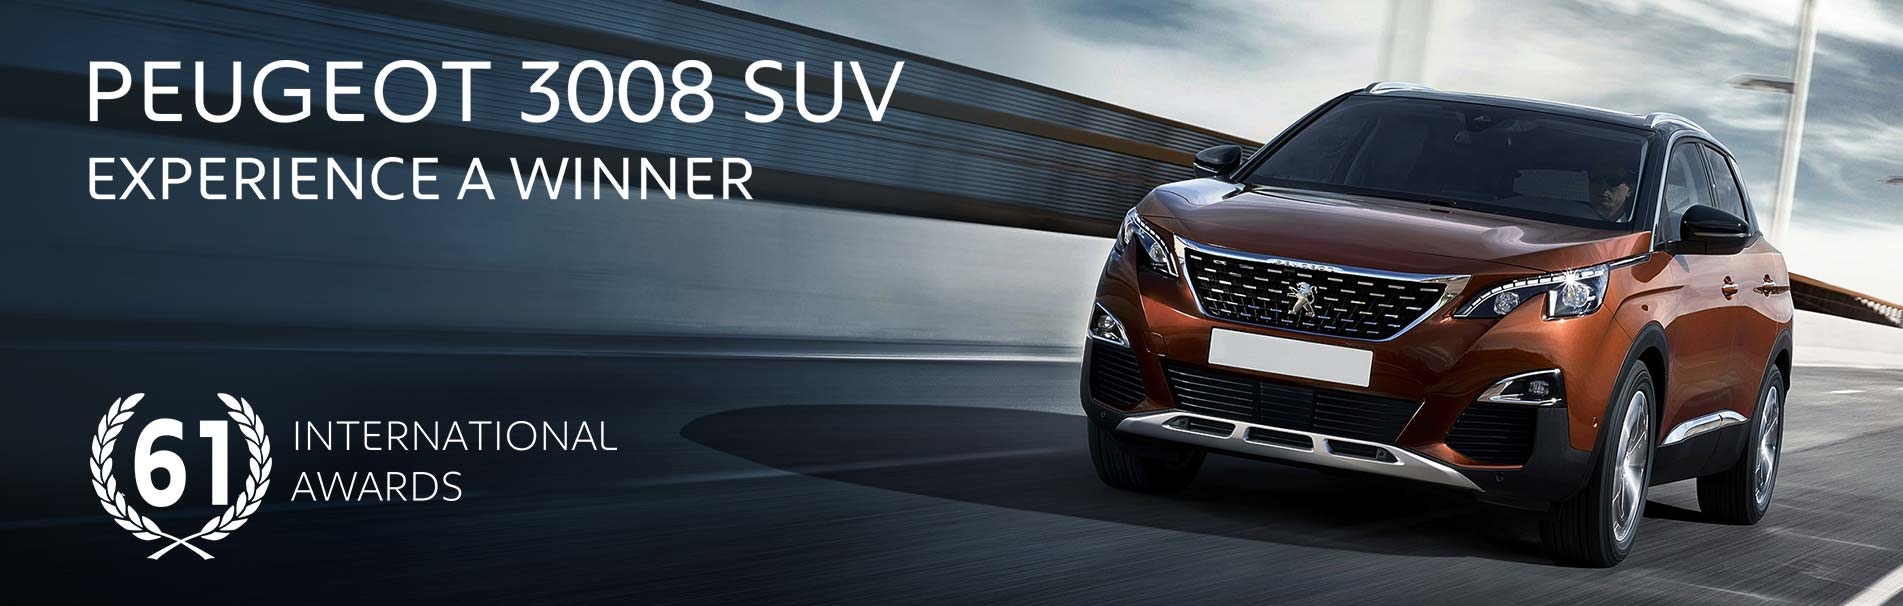 peugeot-3008-suv-61-international-awards-sli